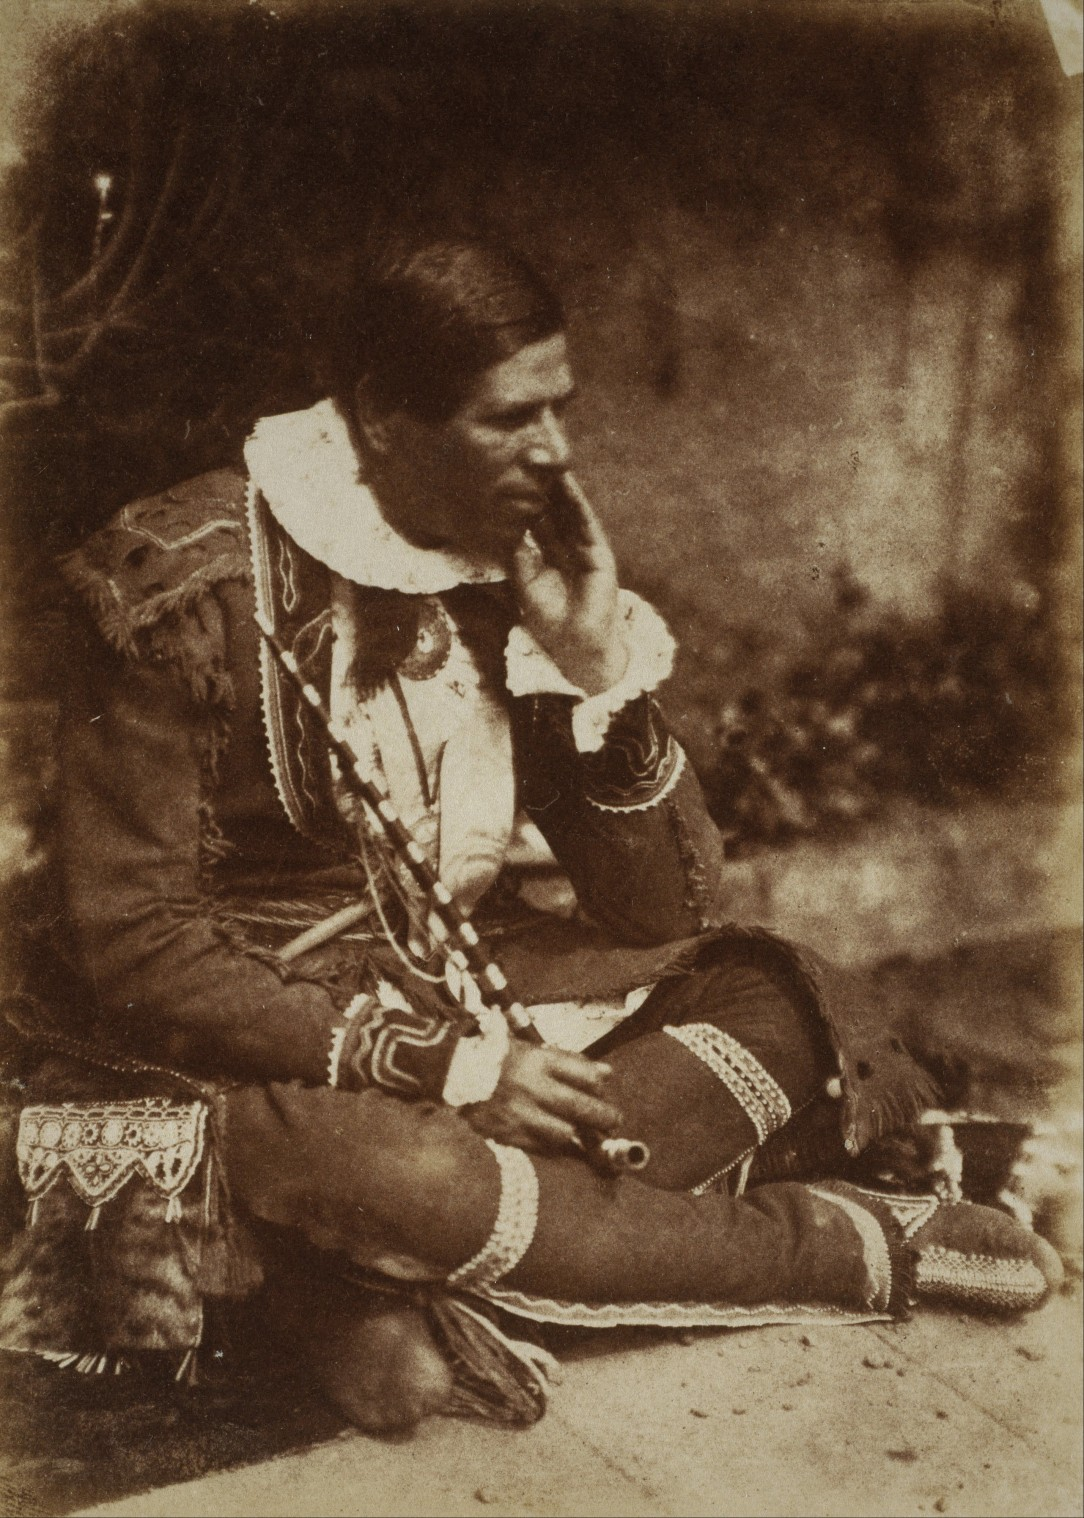 Portrait of Kahkewaquonaby (Reverend Peter Jones) by David Octavius Hill and Robert Adamson, 1845, Library and Archives Canada PA-215156